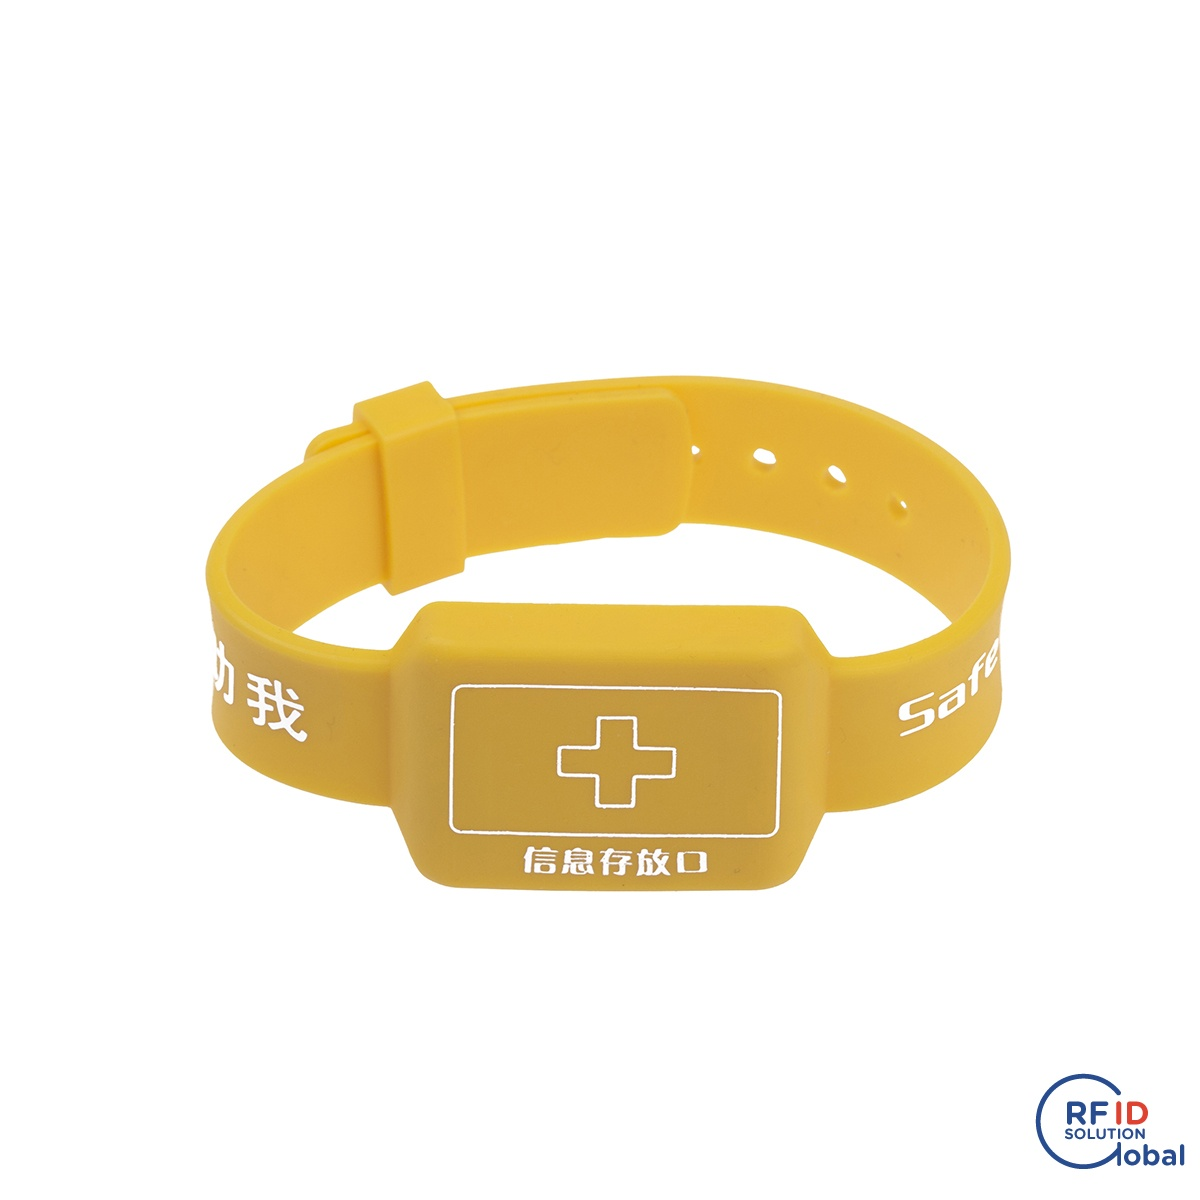 Practical Rfid Bracelet 13.56mhz I-code 2 Soft Silicon Rfid Wristband For Electronic Safe Lock Access Control Security & Protection